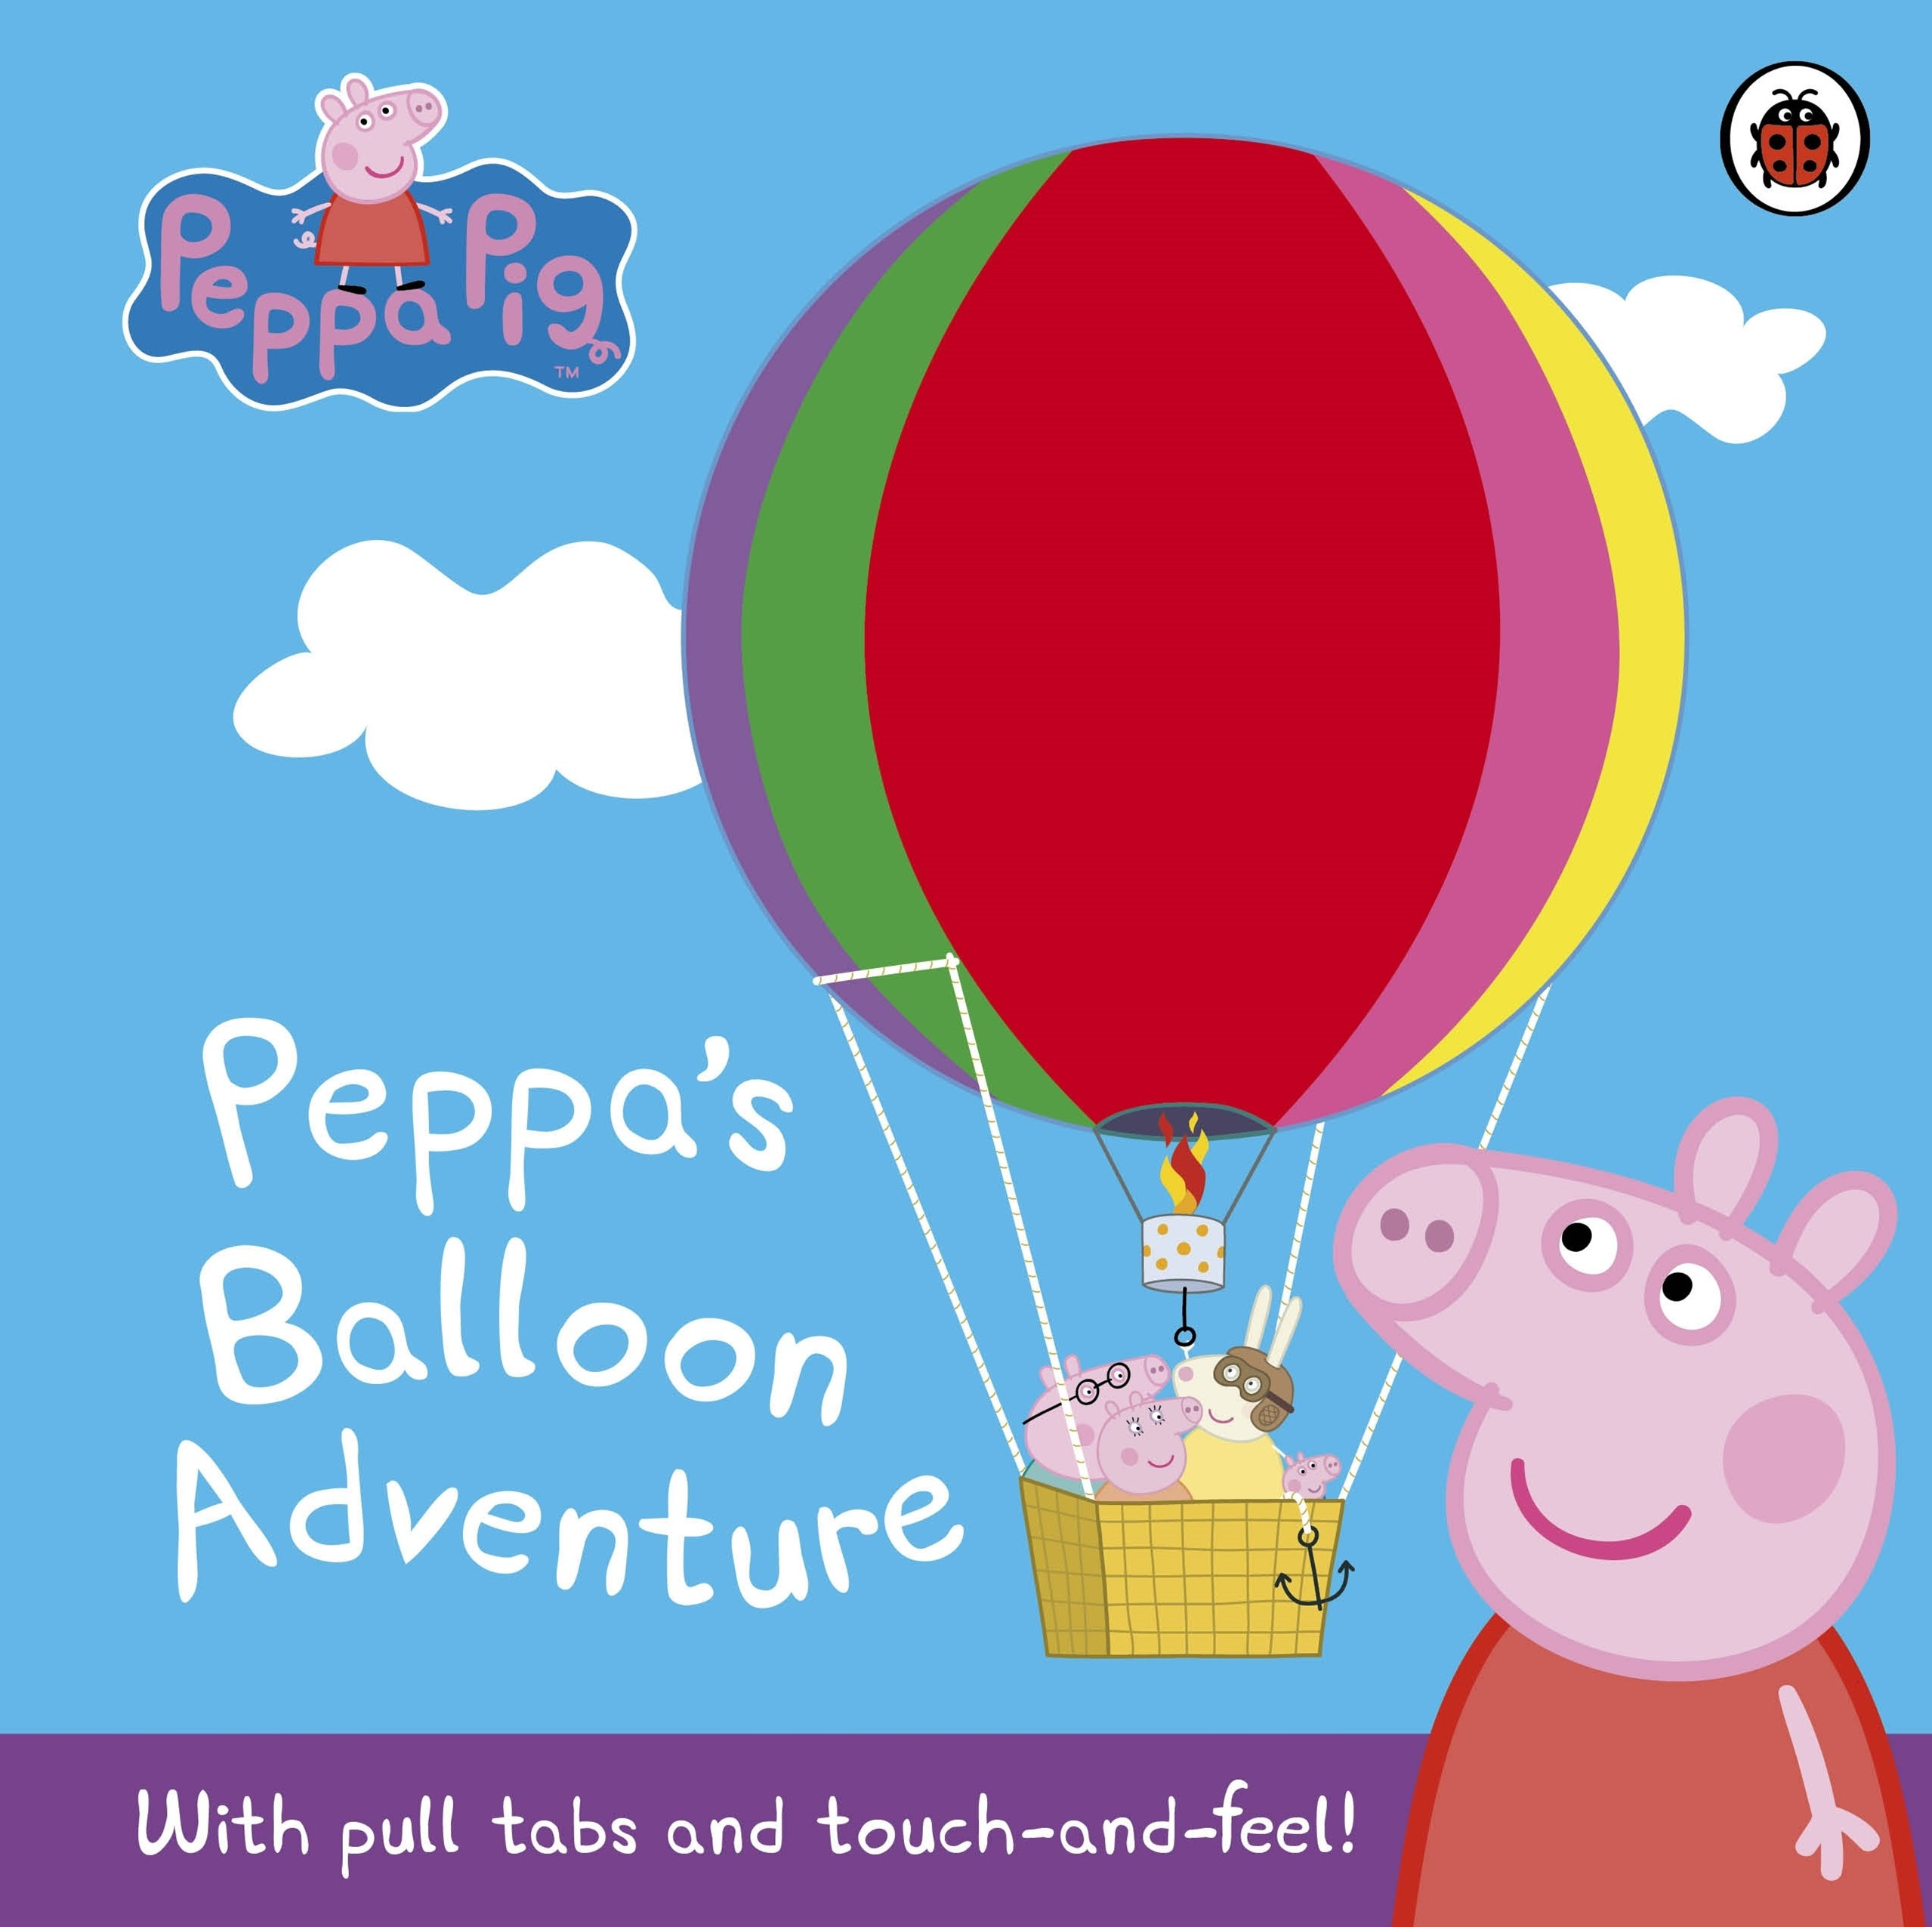 Peppa Pig: Peppa's Balloon Adventure